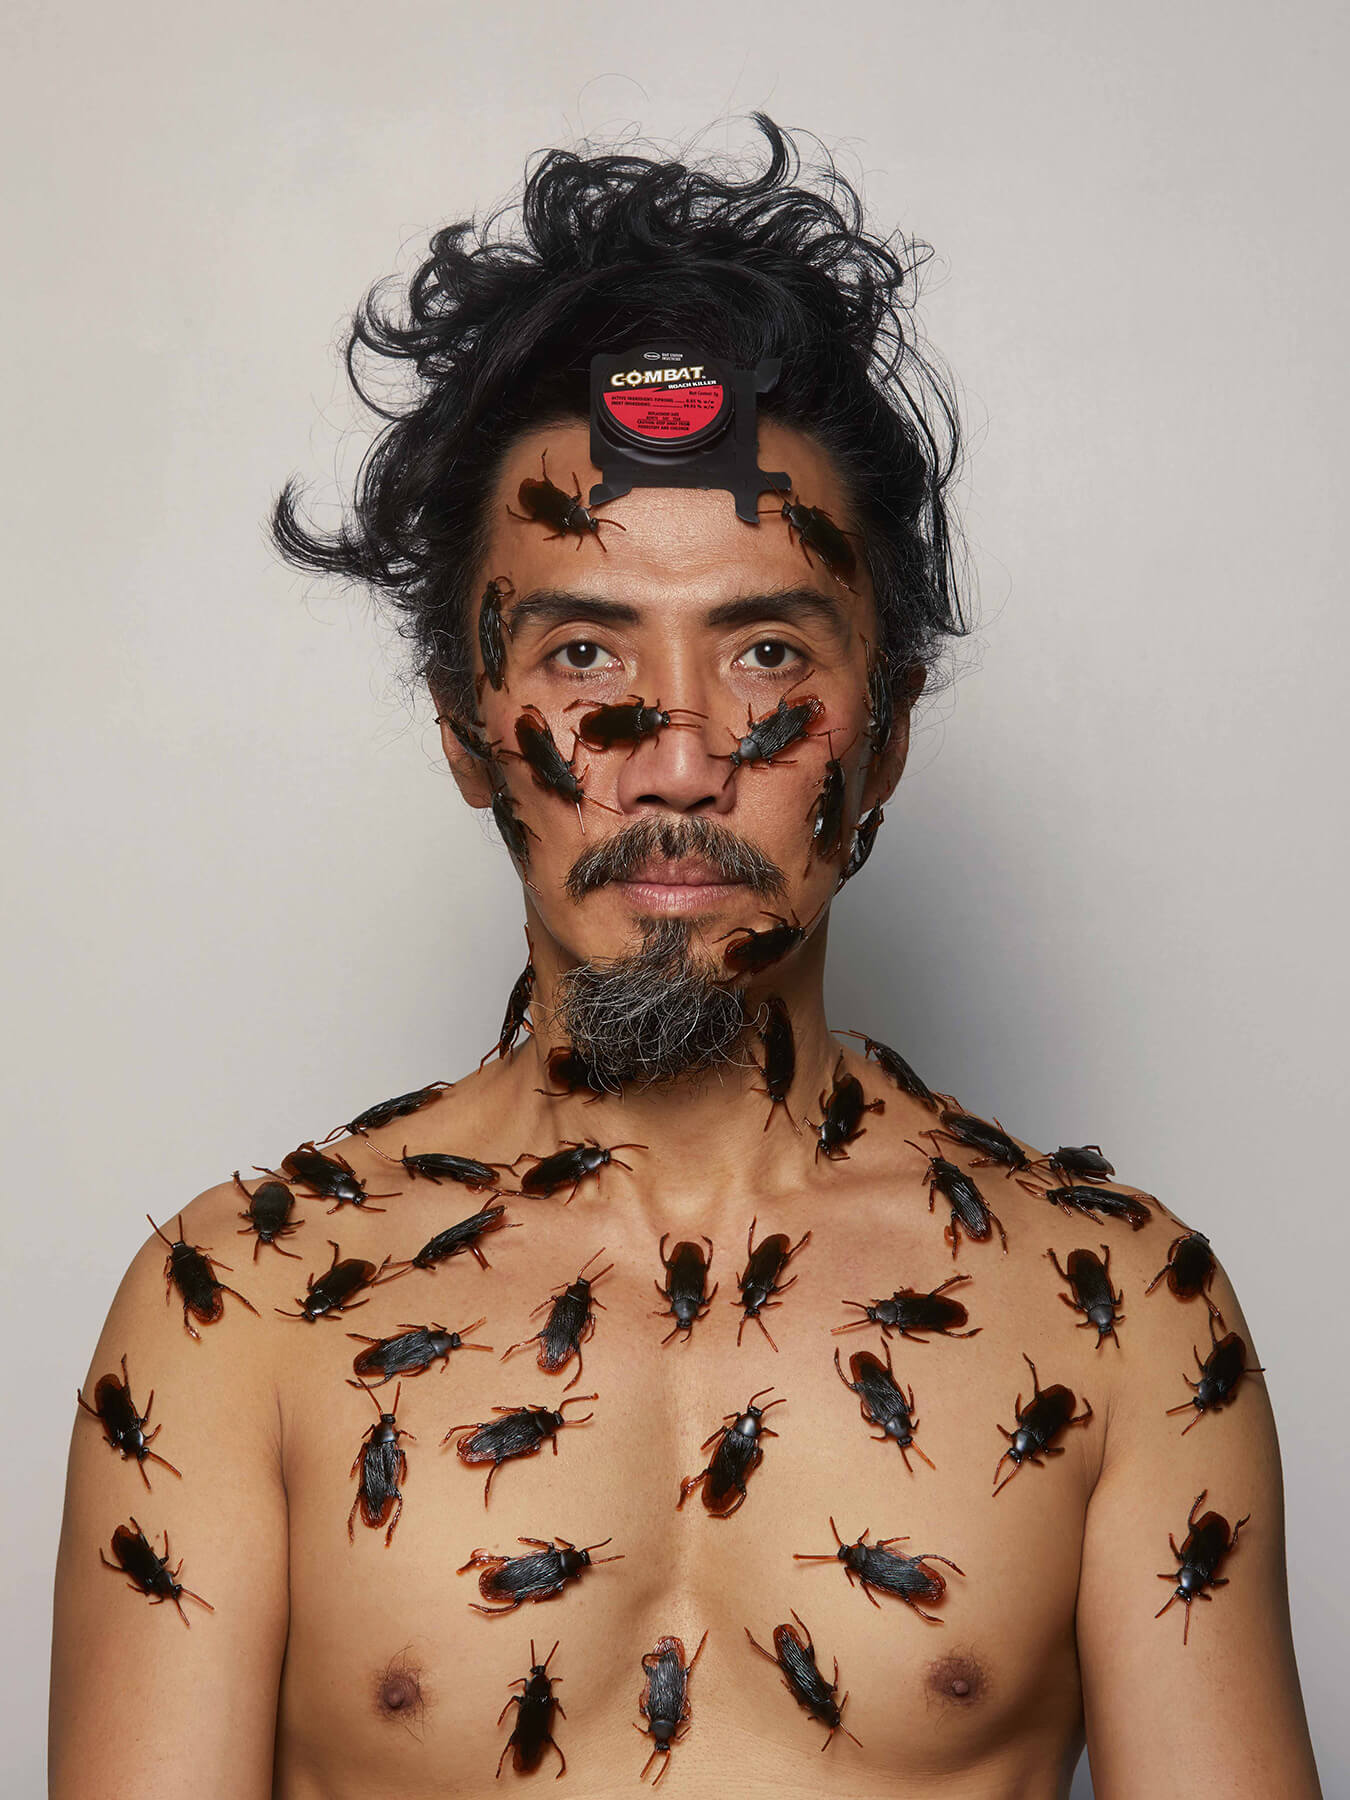 16 Jan 2018 Derong has cockroaches crawling all over his face and body